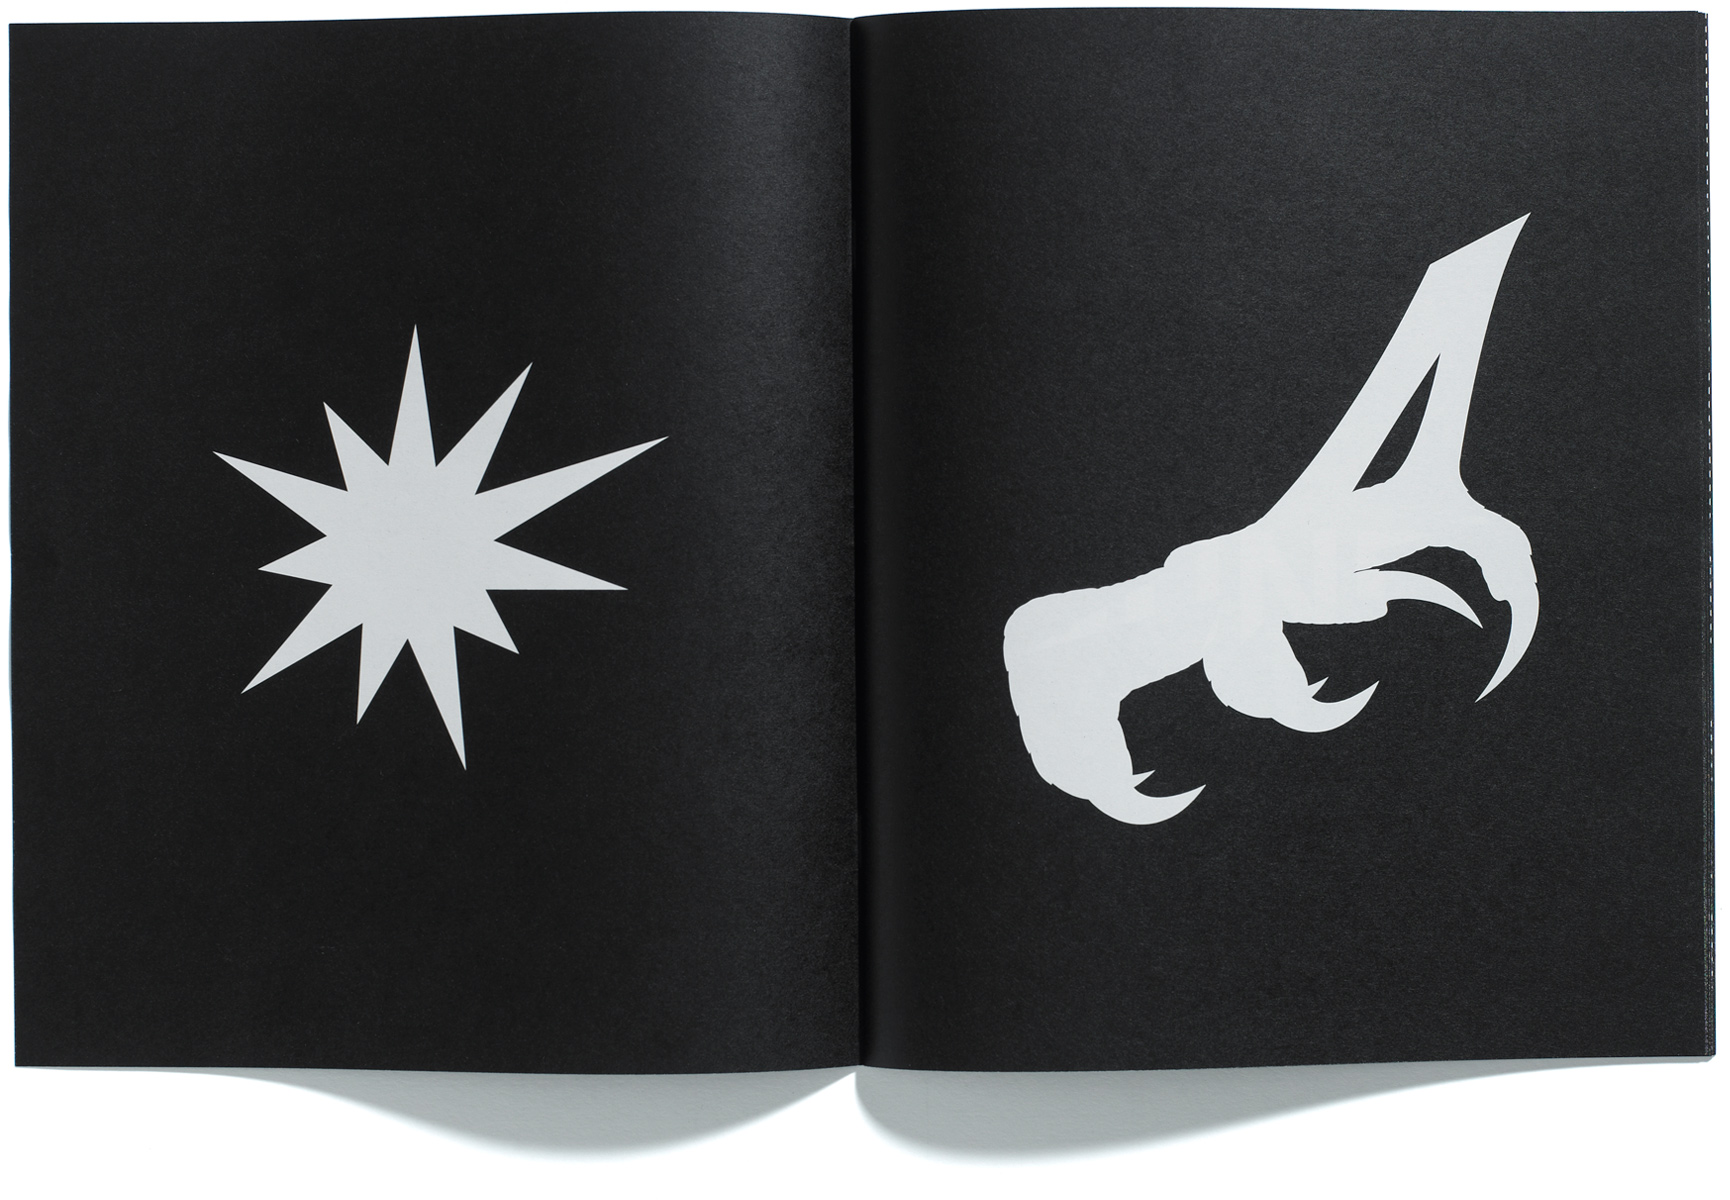 Browns Editions, Jonathan Ellery, Ellerys Theory of Neo-conservative Creationism, A Catalogue, designed by Browns Design